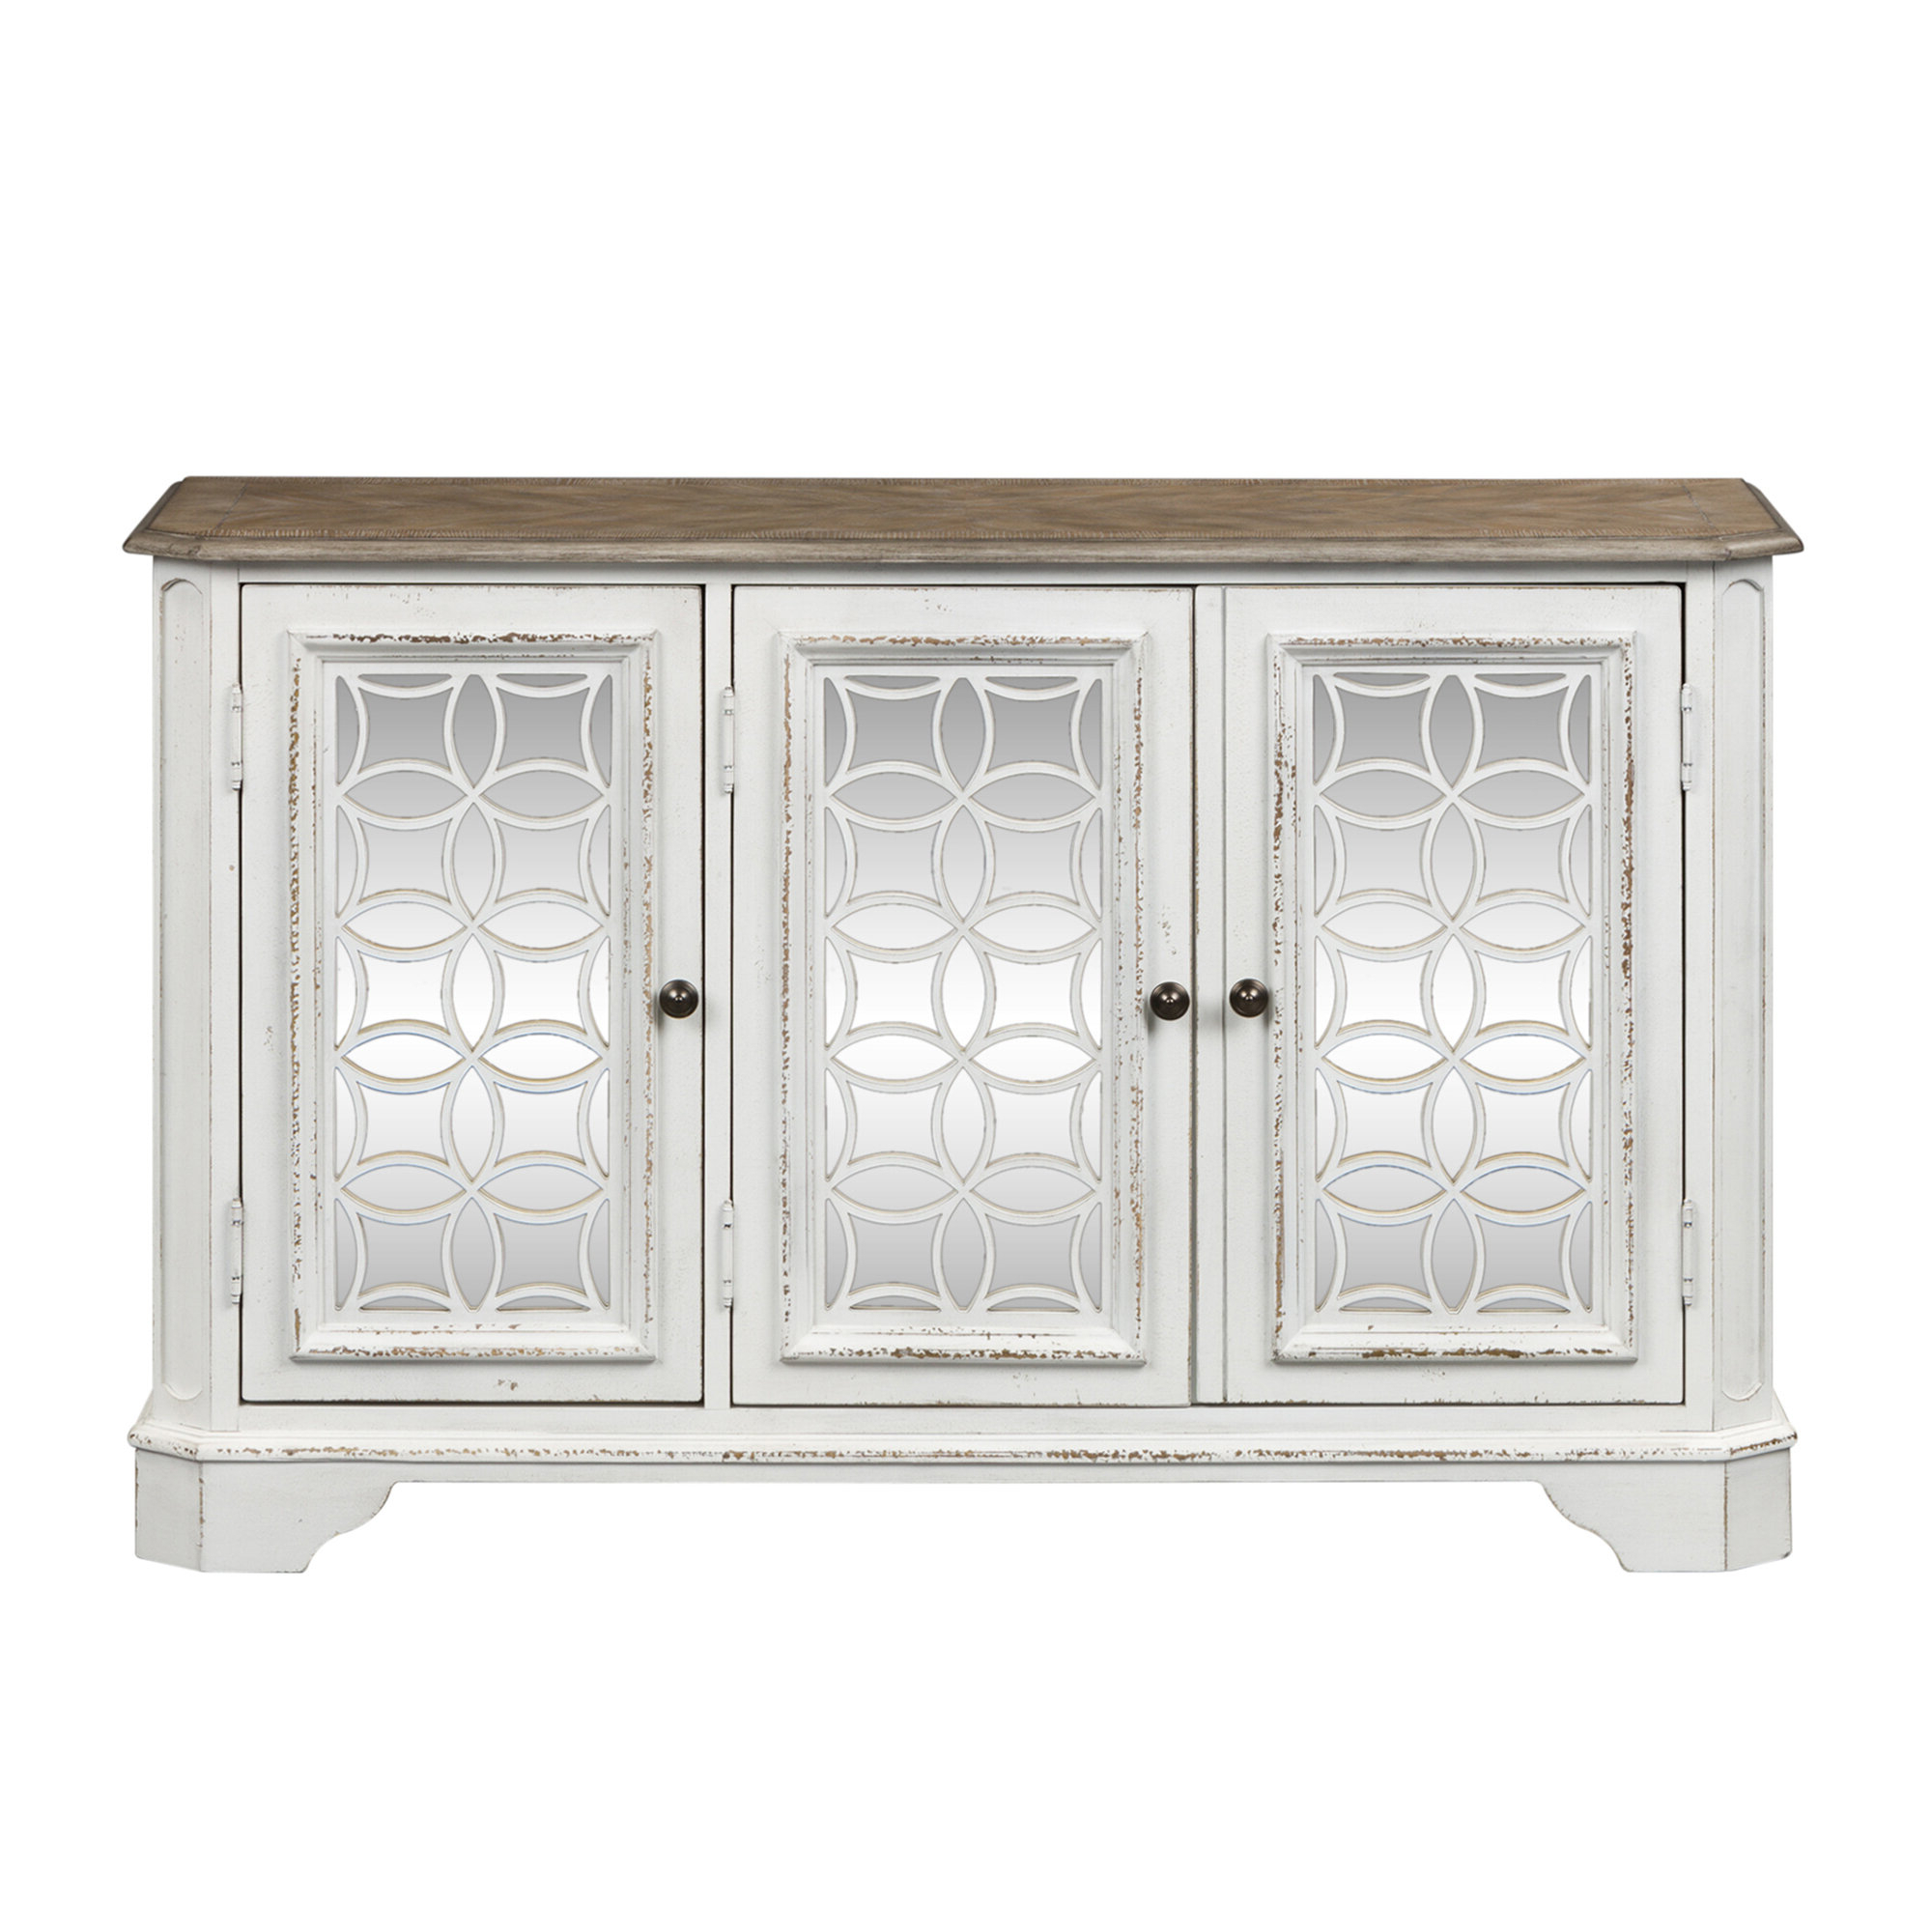 2019 Tavant Sideboard Throughout Tiphaine Sideboards (View 1 of 20)